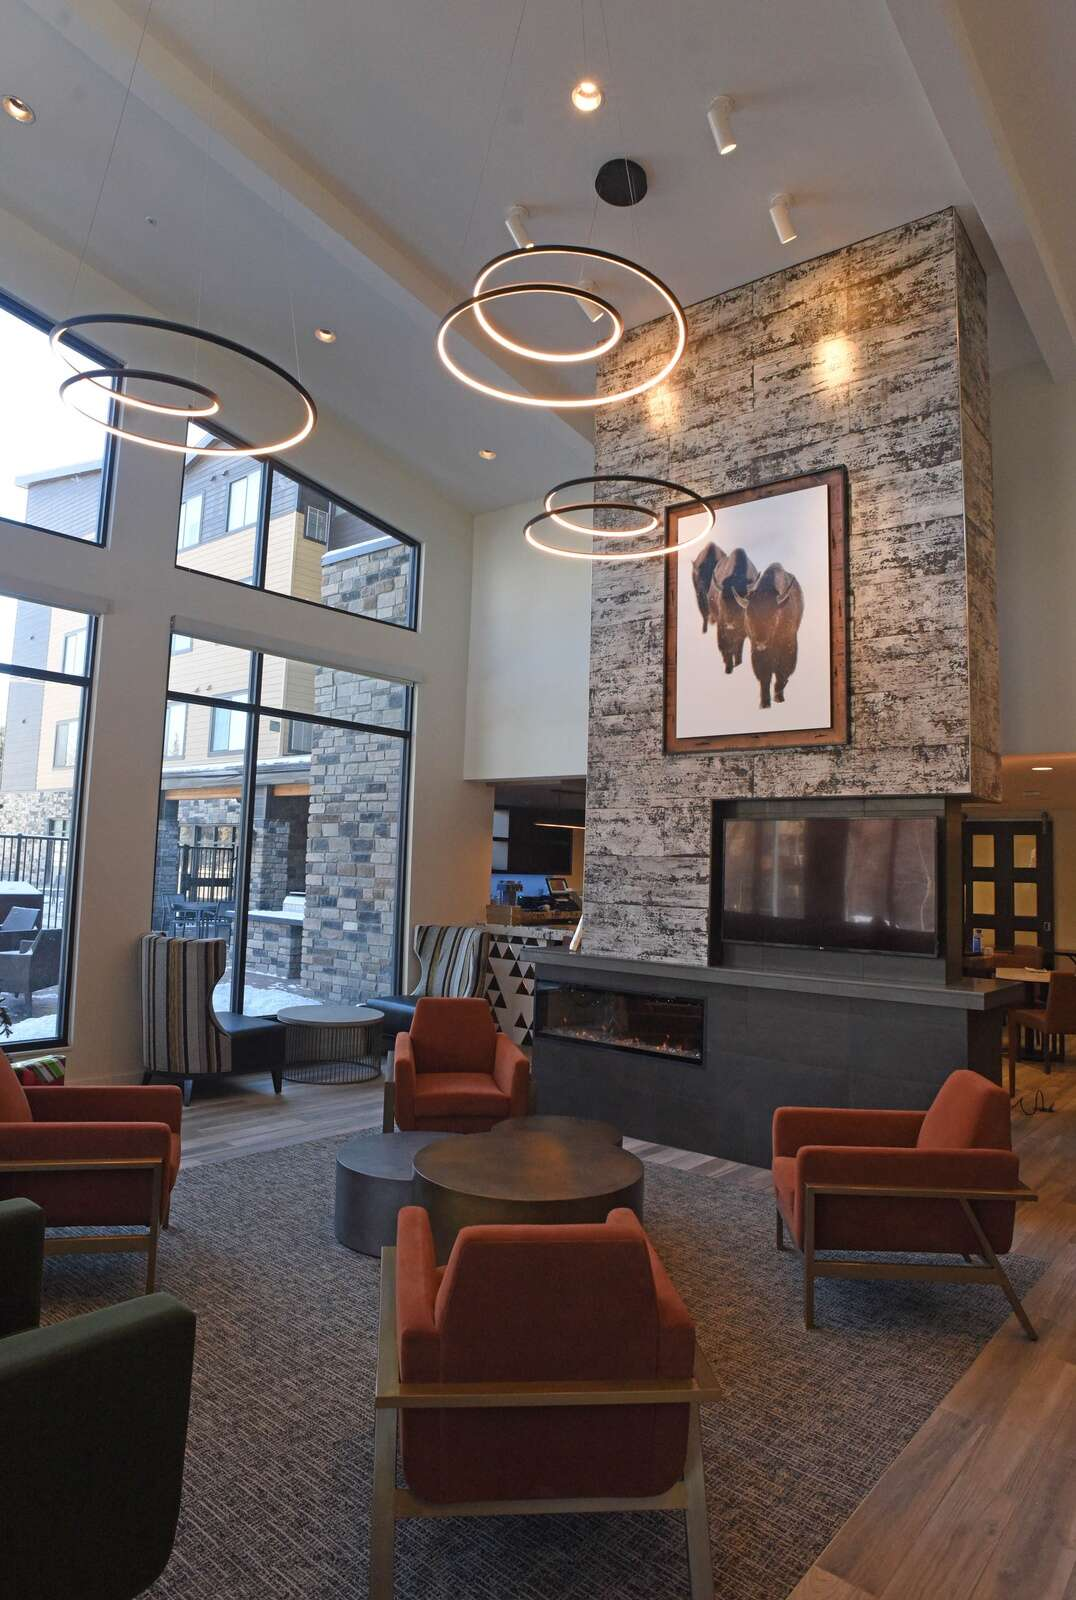 The entry of the new Residence Inn by Marriott offers guests a relaxing space to enjoy the bar and restaurant. (Photo by John F. Russell)